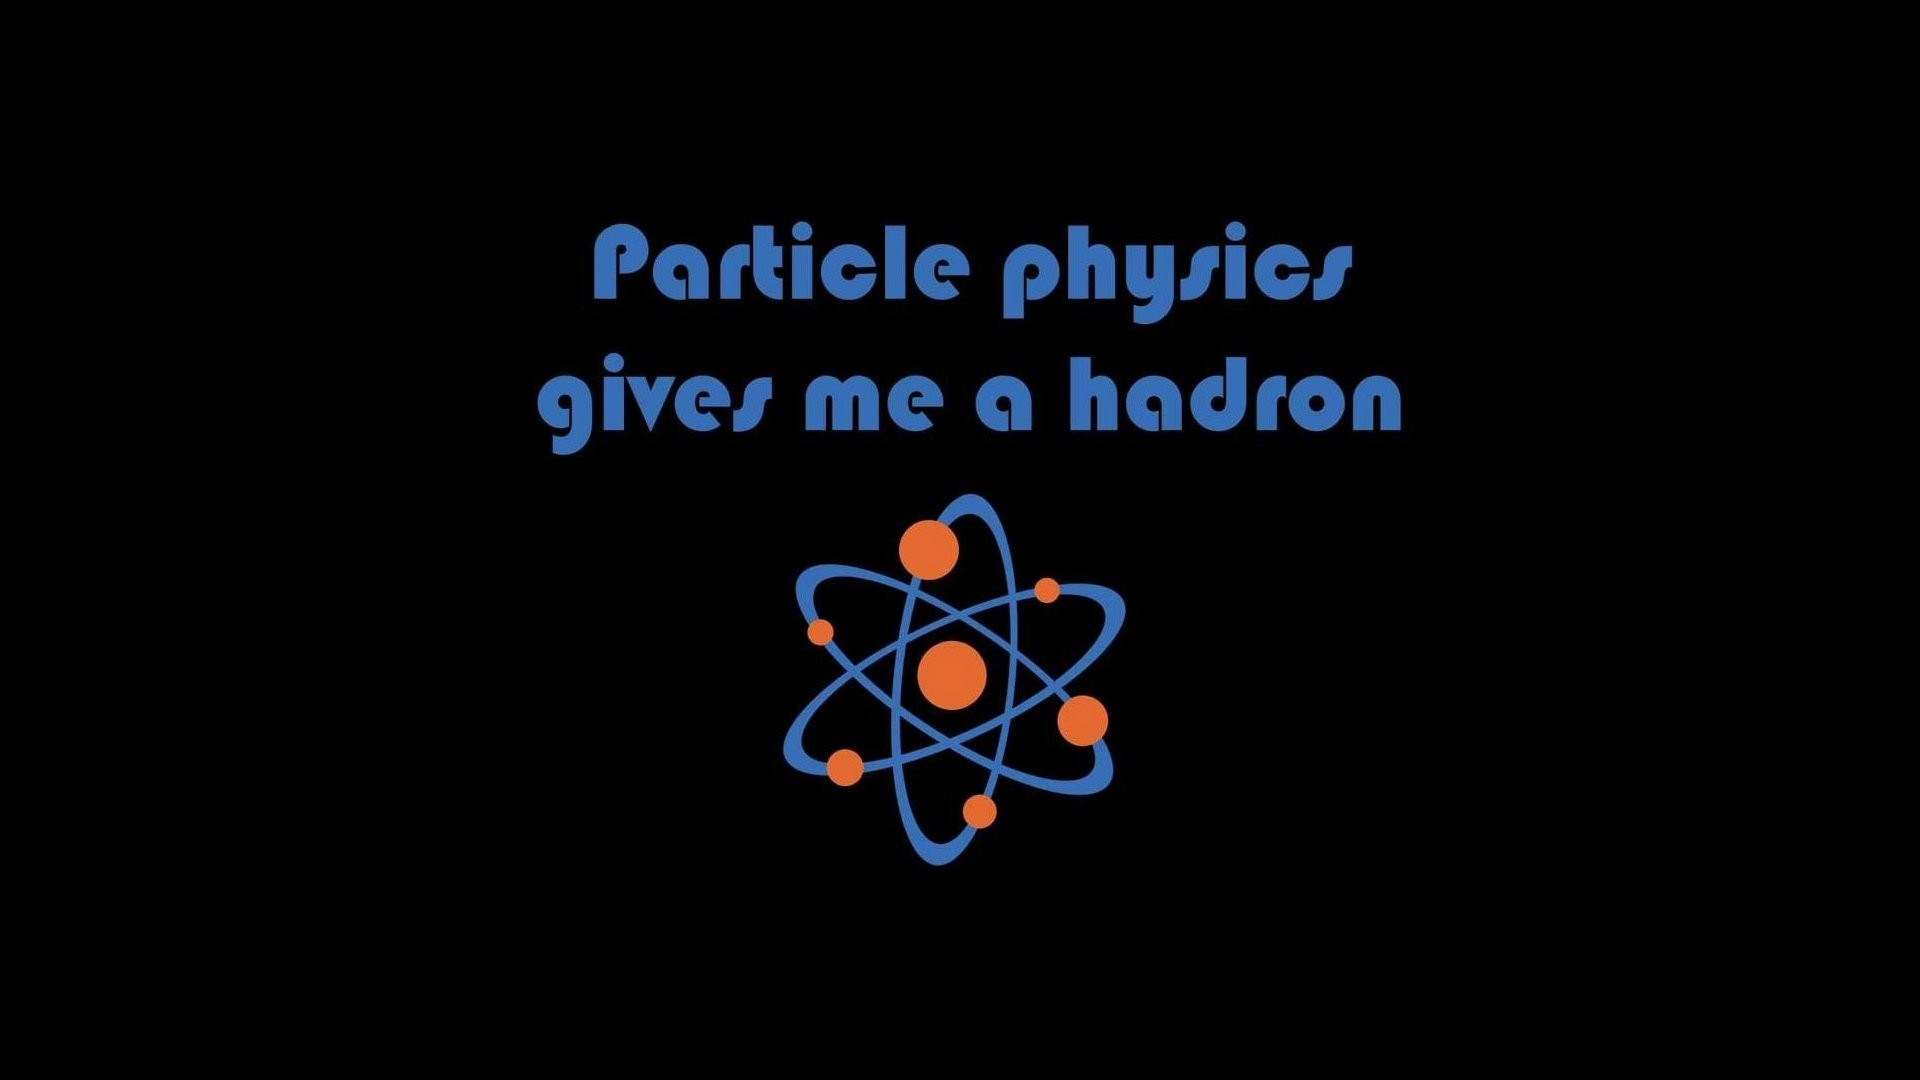 Technology – Physics And Chemistry Wallpaper